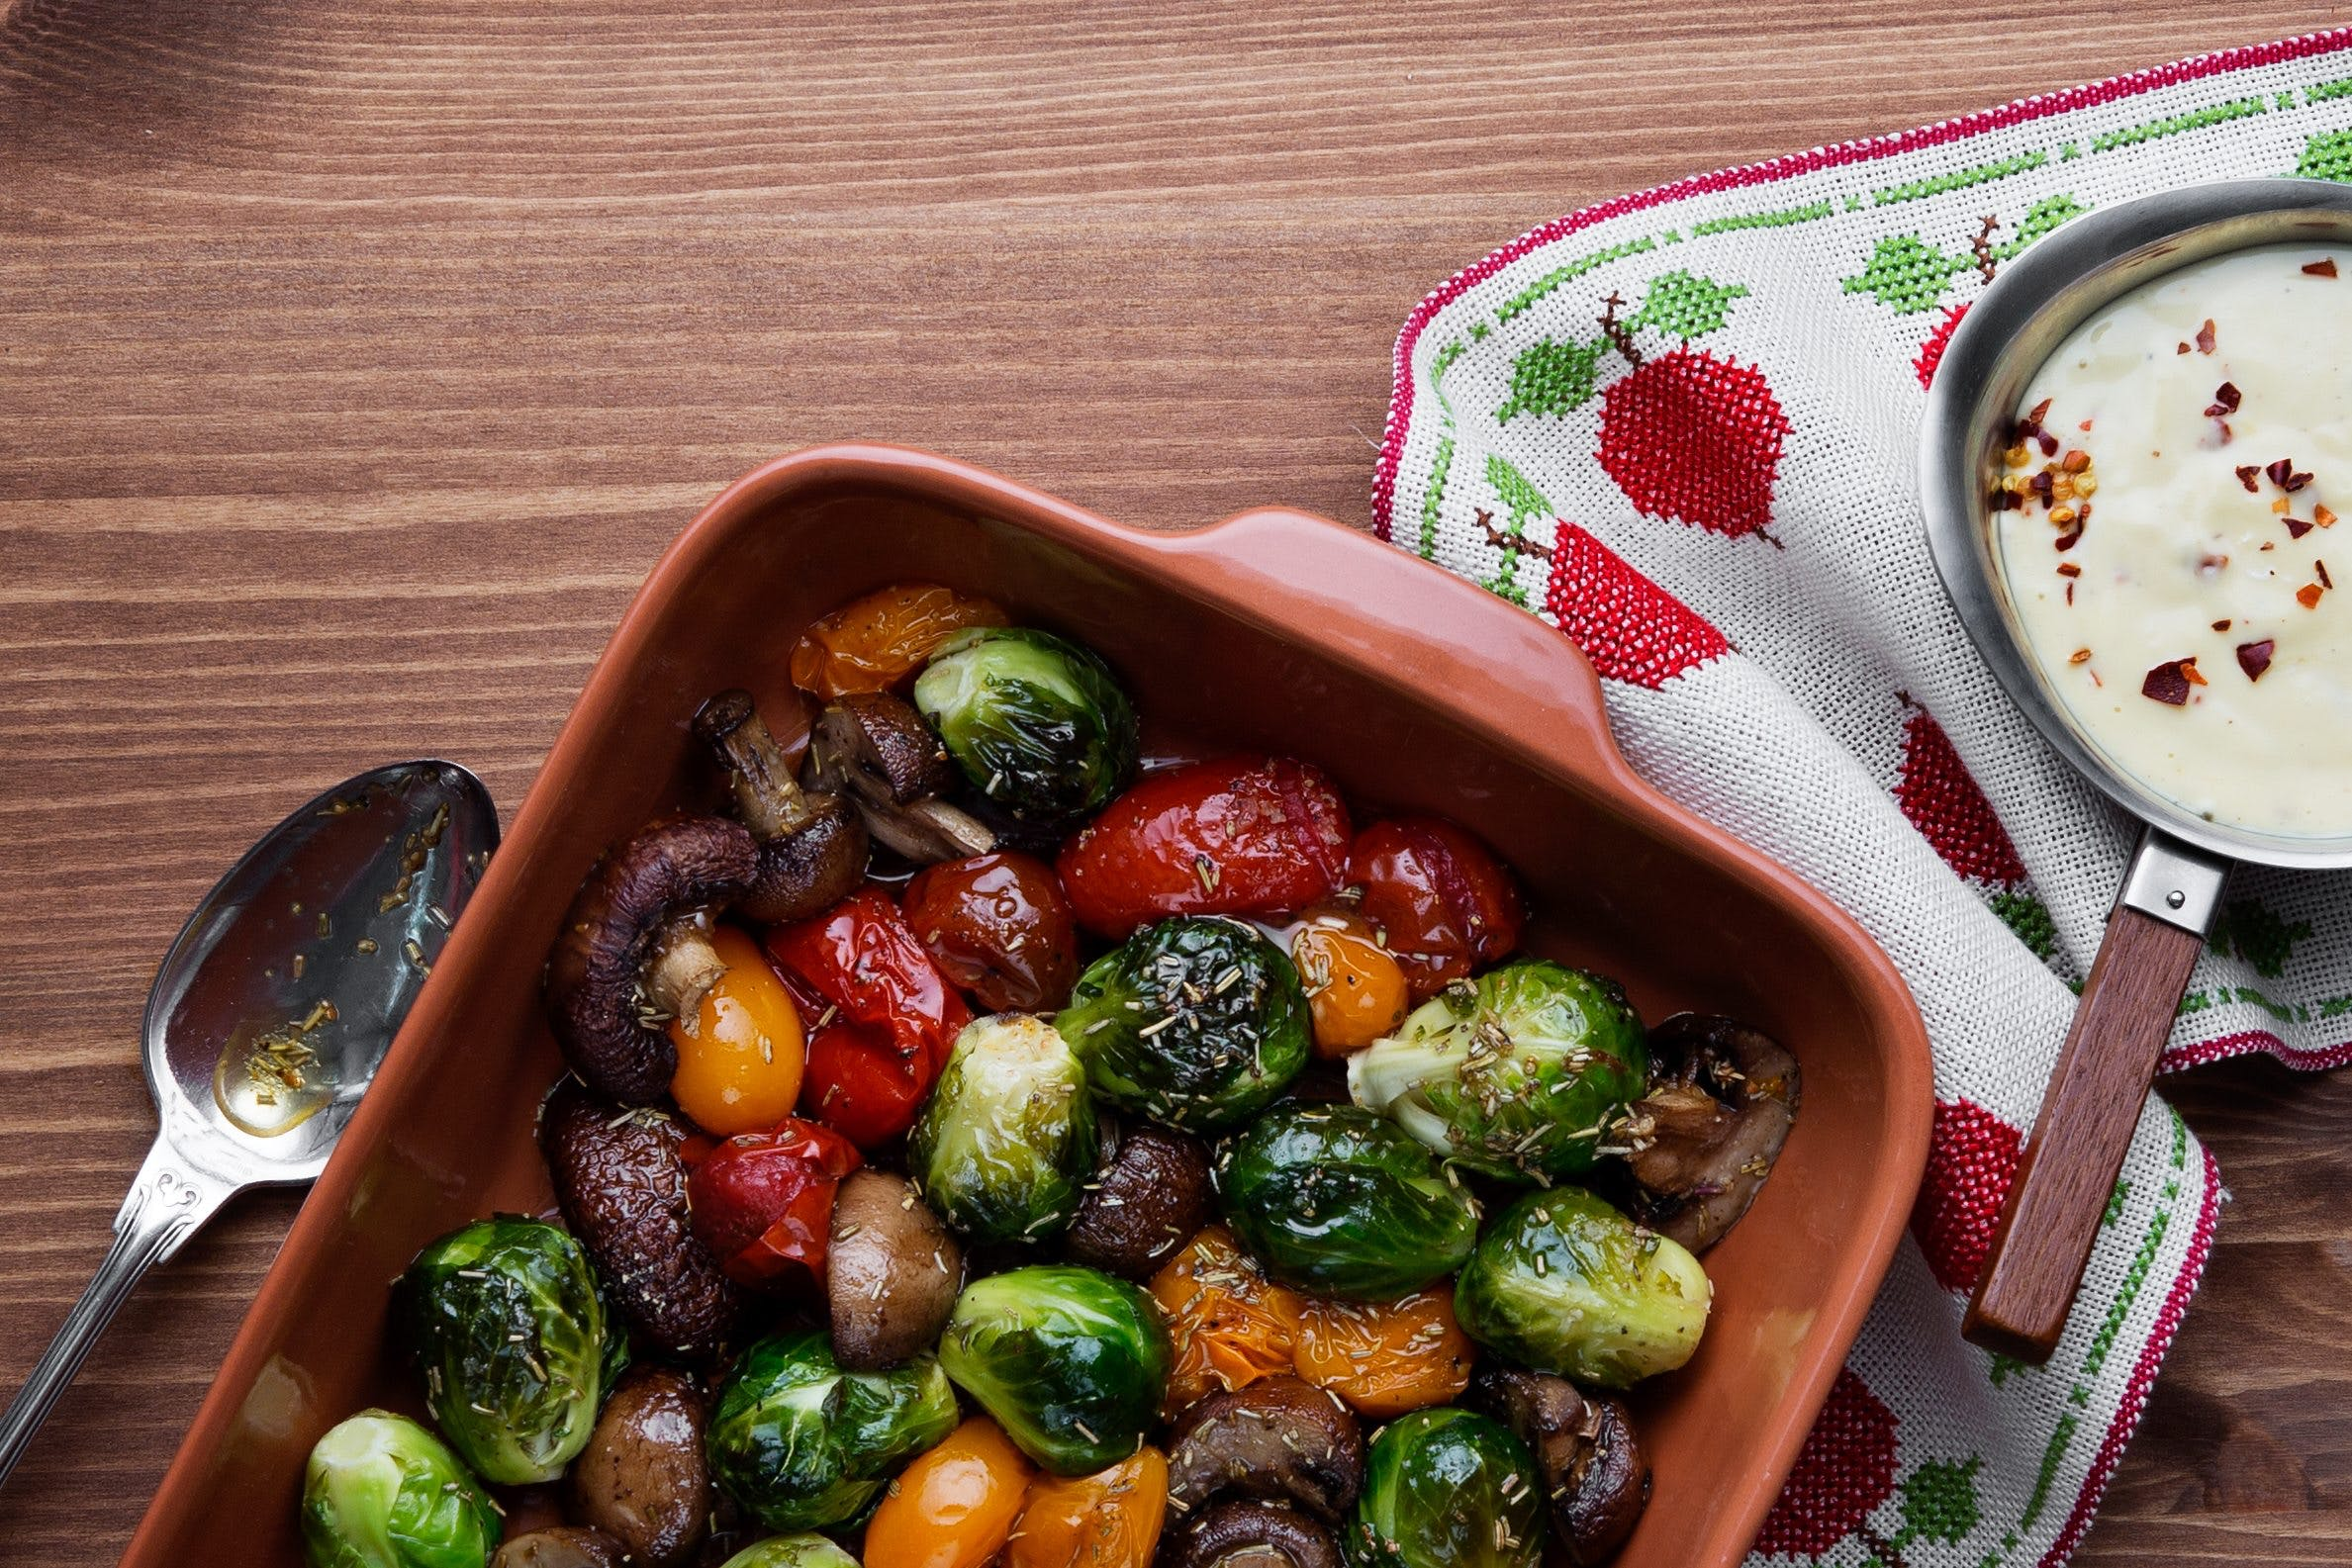 Roasted vegetables Tricolore